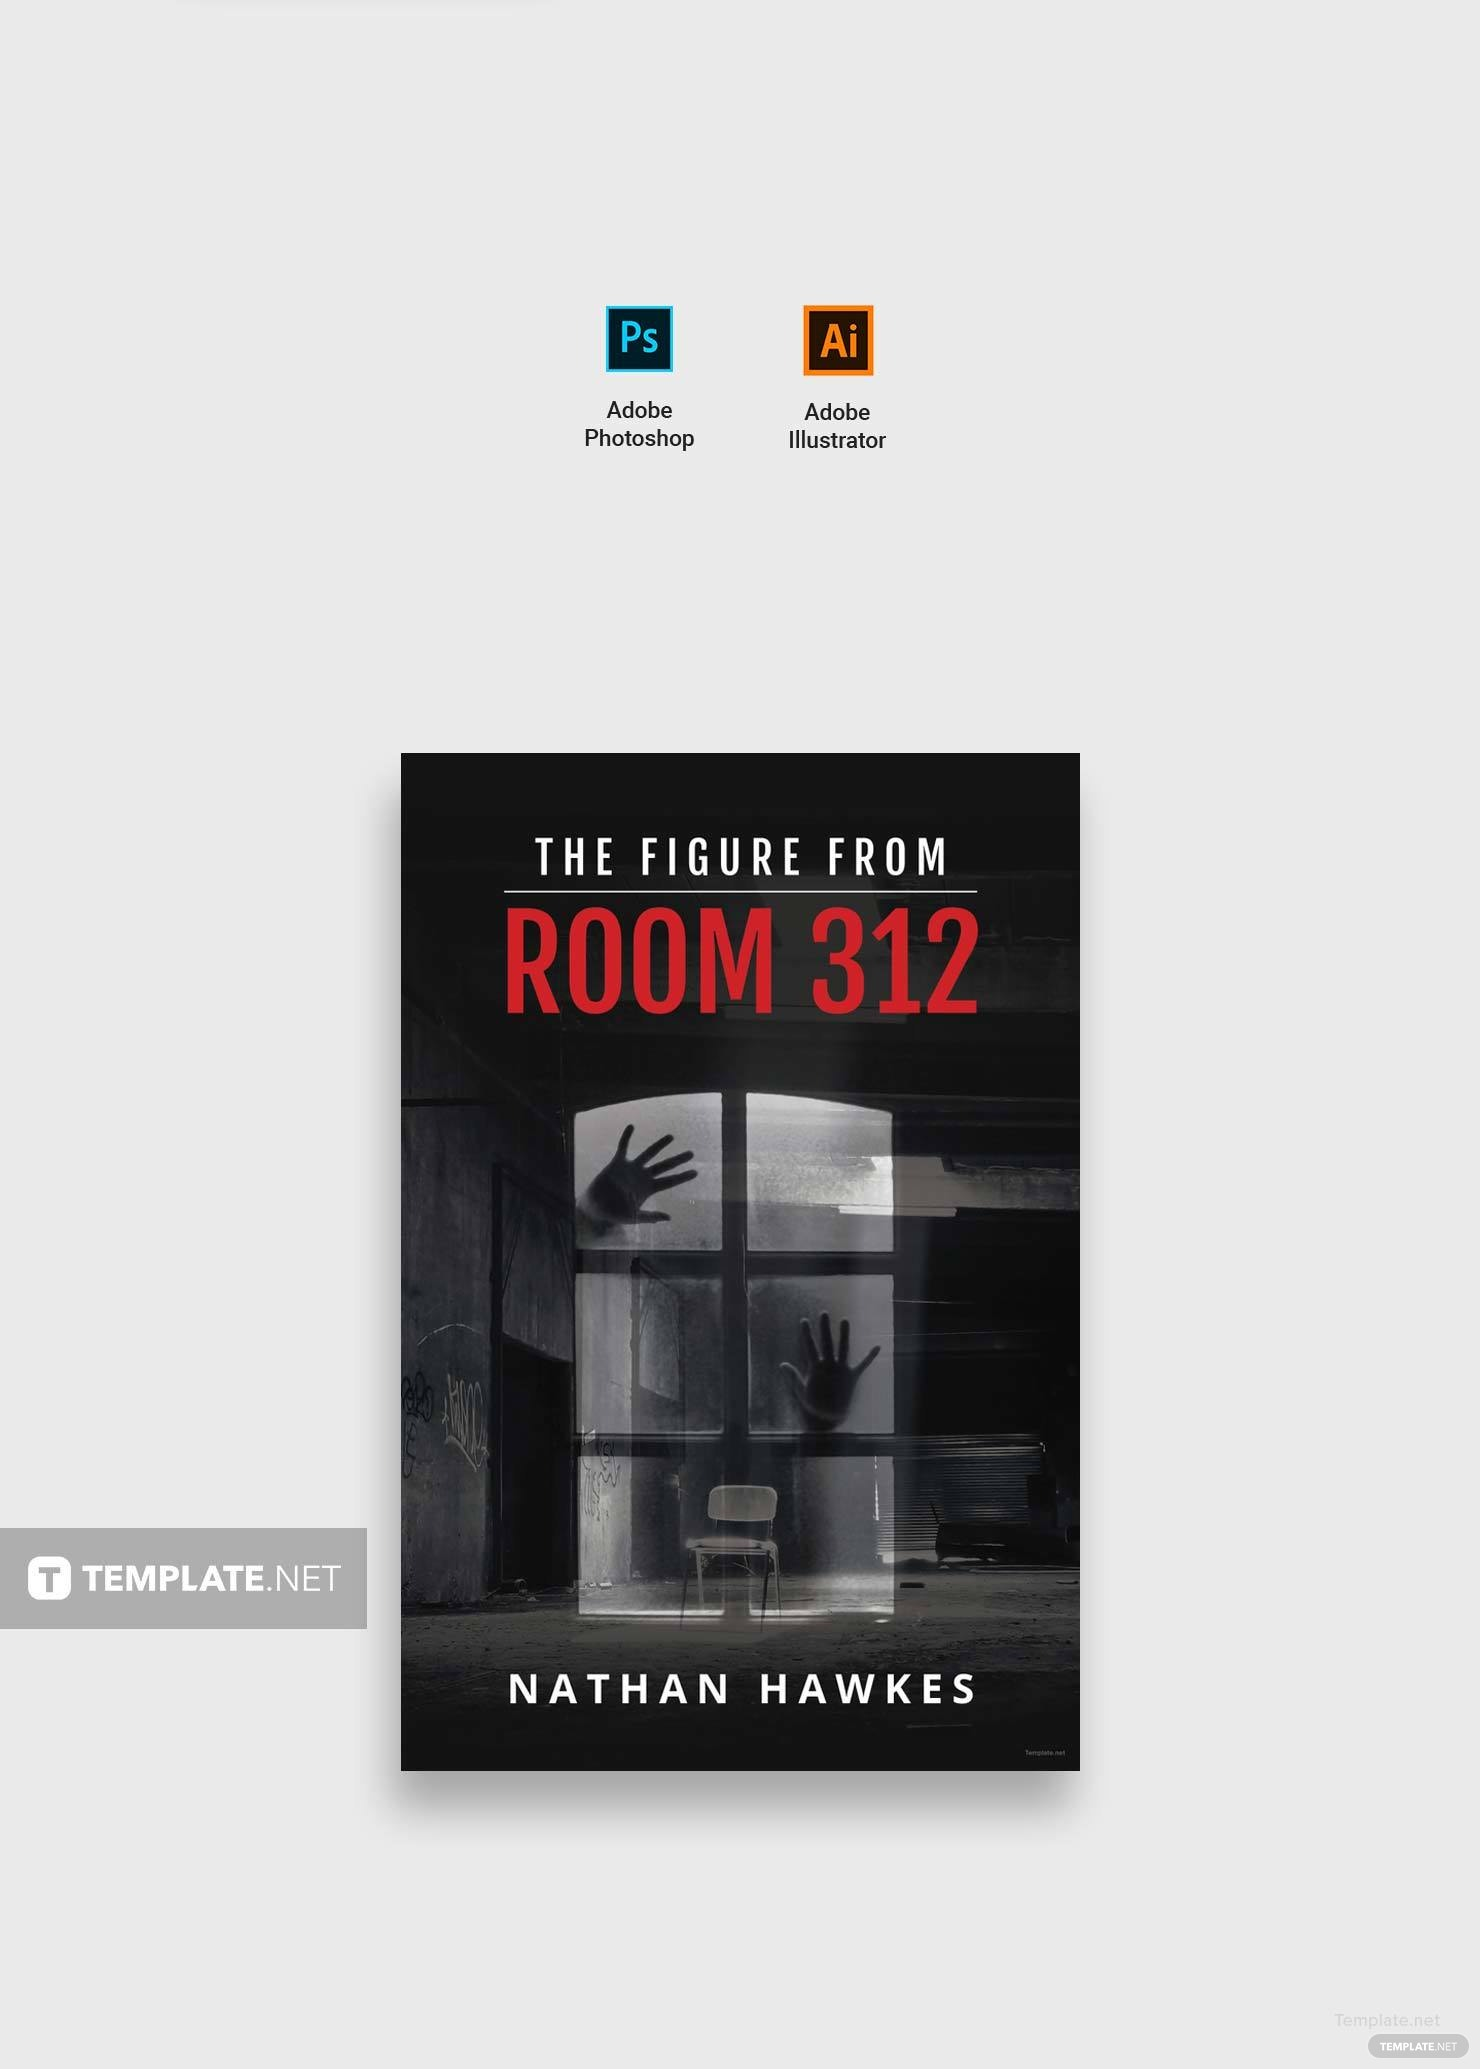 Free Thriller Book Cover Template in Adobe Photoshop, Illustrator ...